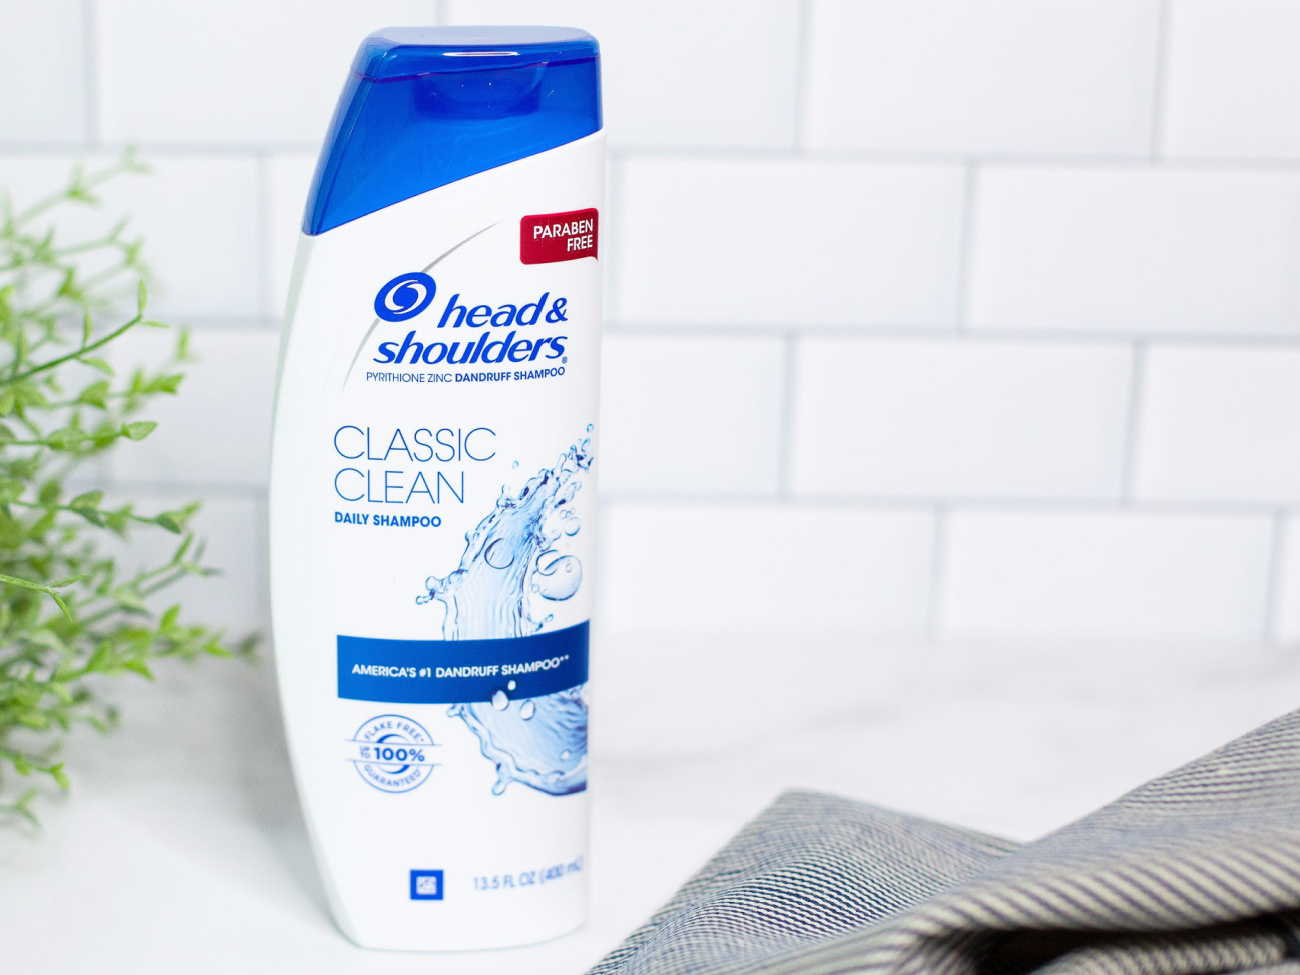 Head & Shoulders Products Only $2.66 At Publix (Regular Price $6.16) on I Heart Publix 2